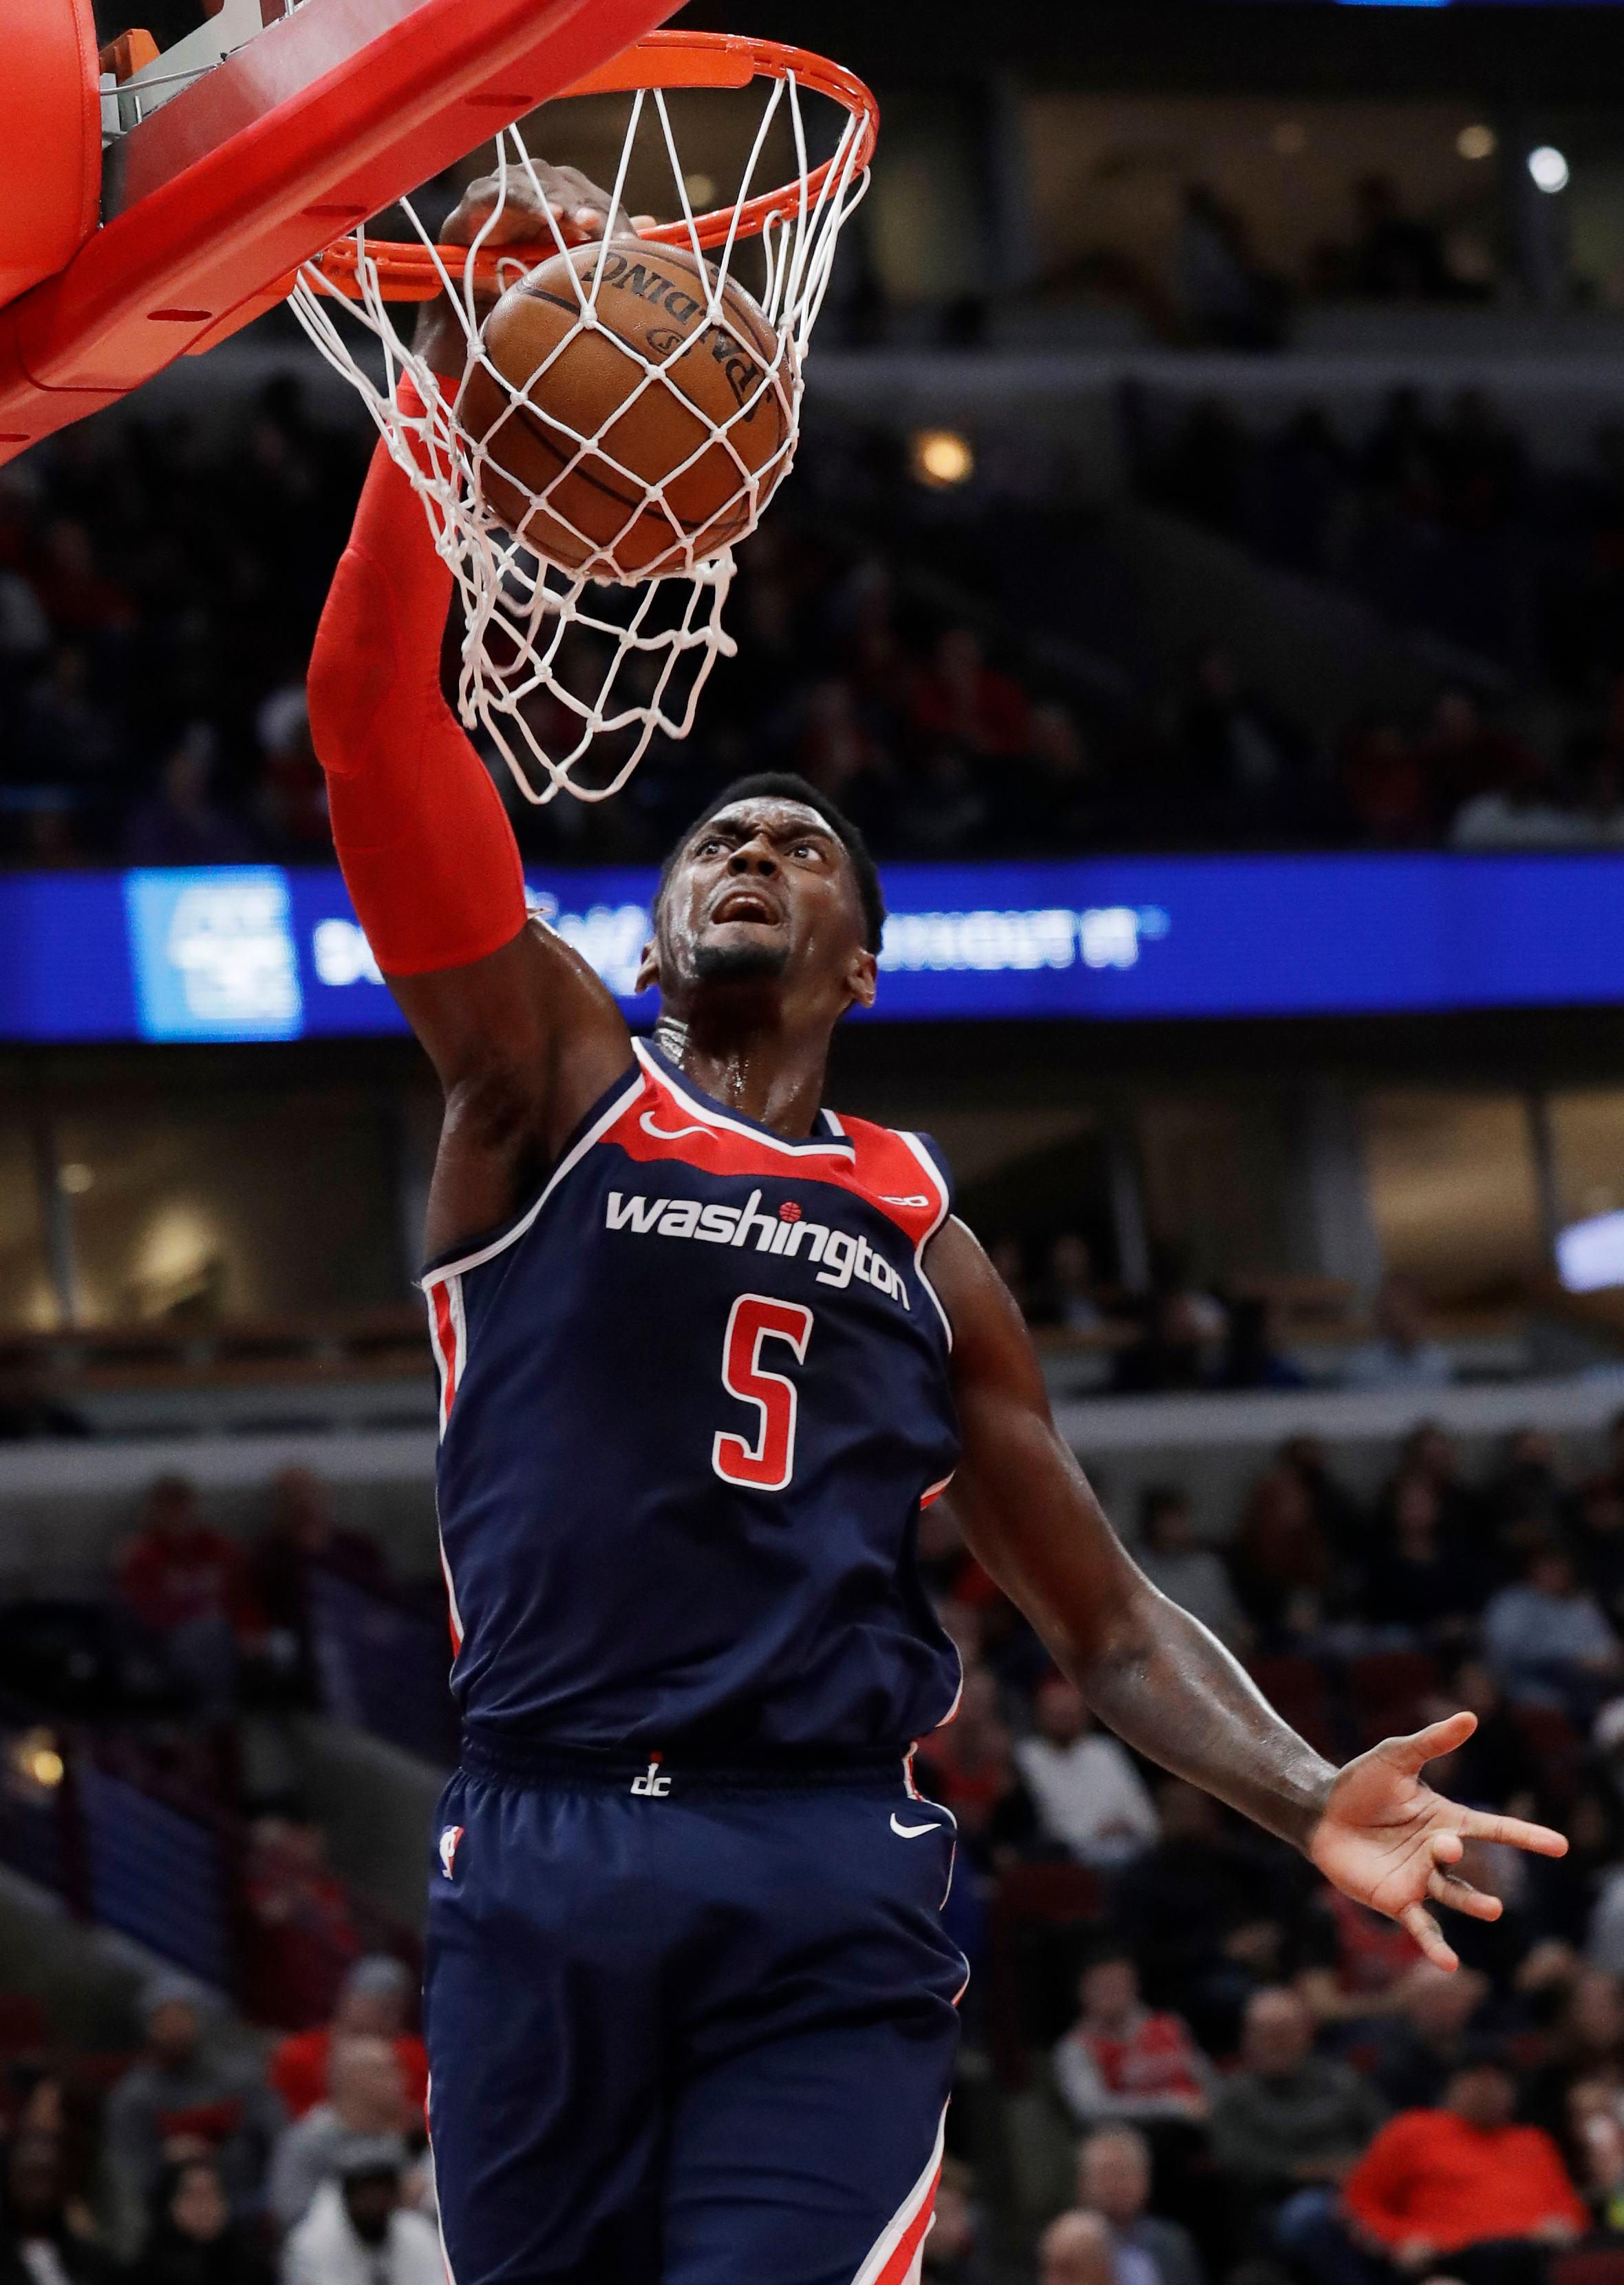 Washington Wizards forward Bobby Portis dunks against the Chicago Bulls during the first half of an NBA basketball game Wednesday, March 20, 2019, in Chicago. (AP Photo/Nam Y. Huh)